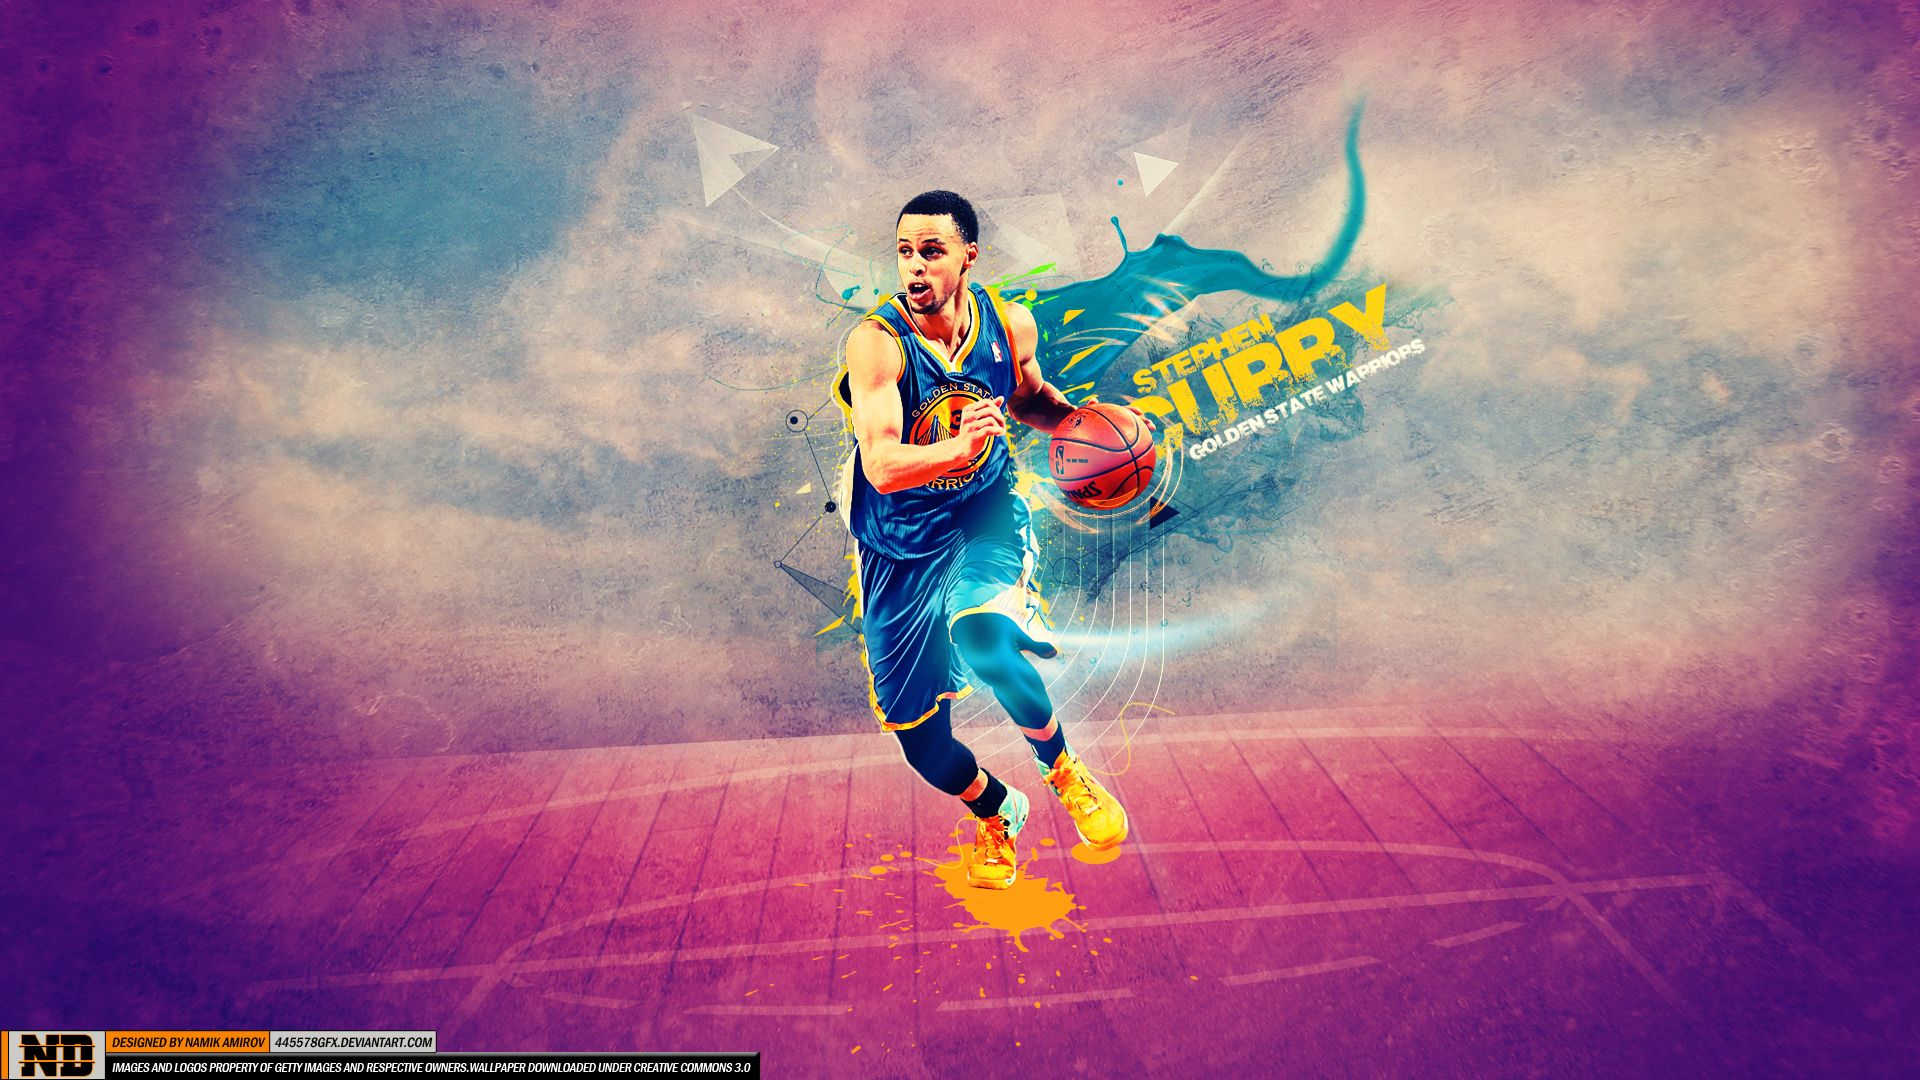 Stephen Curry Wallpaper DS07